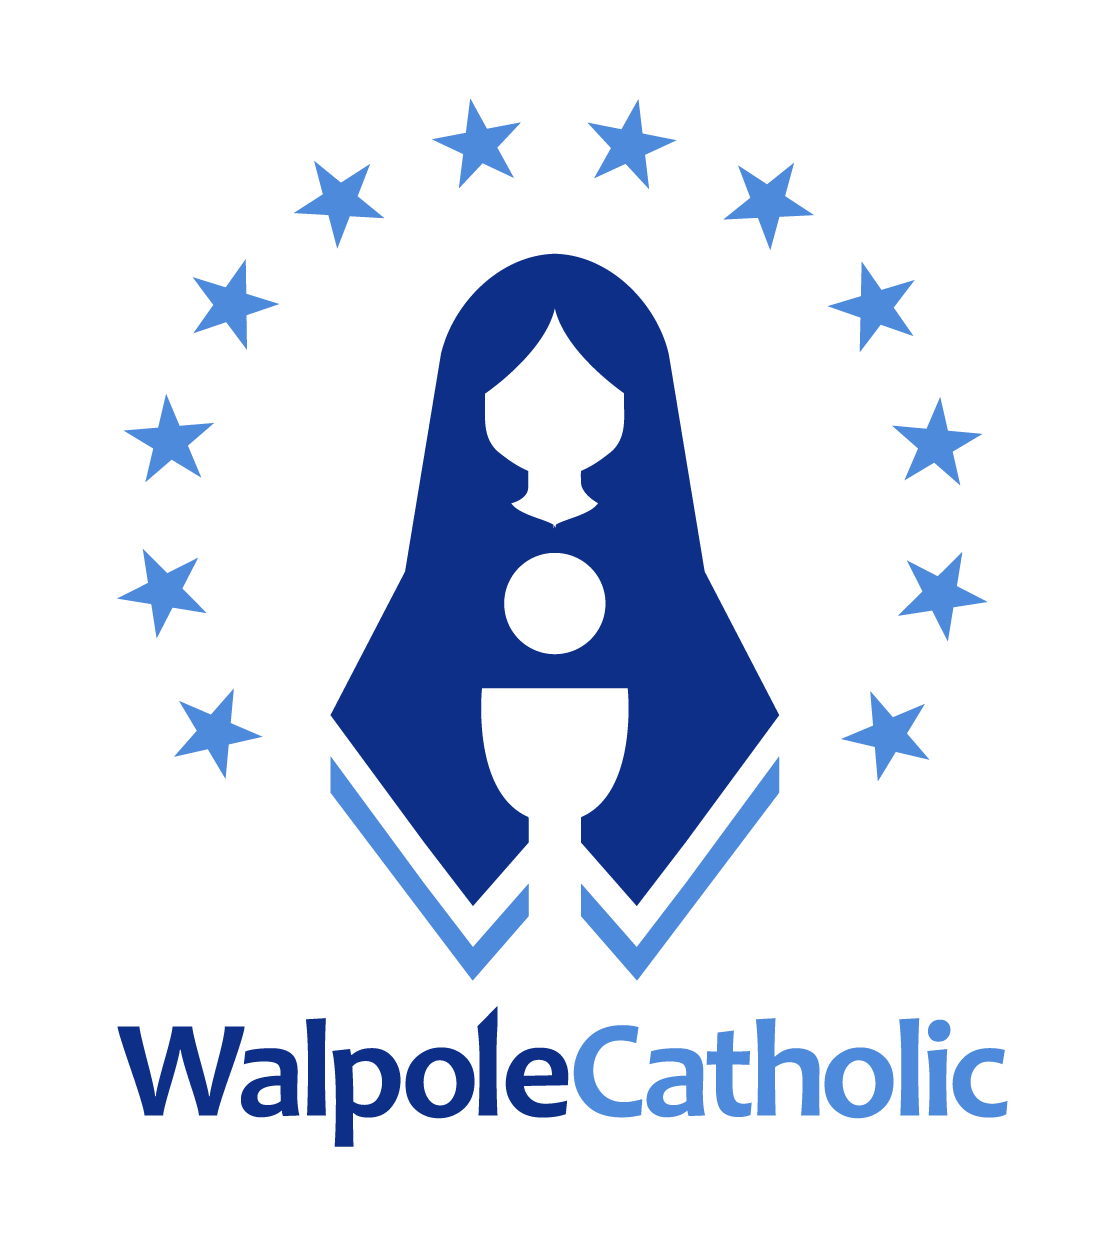 Walpole Catholic